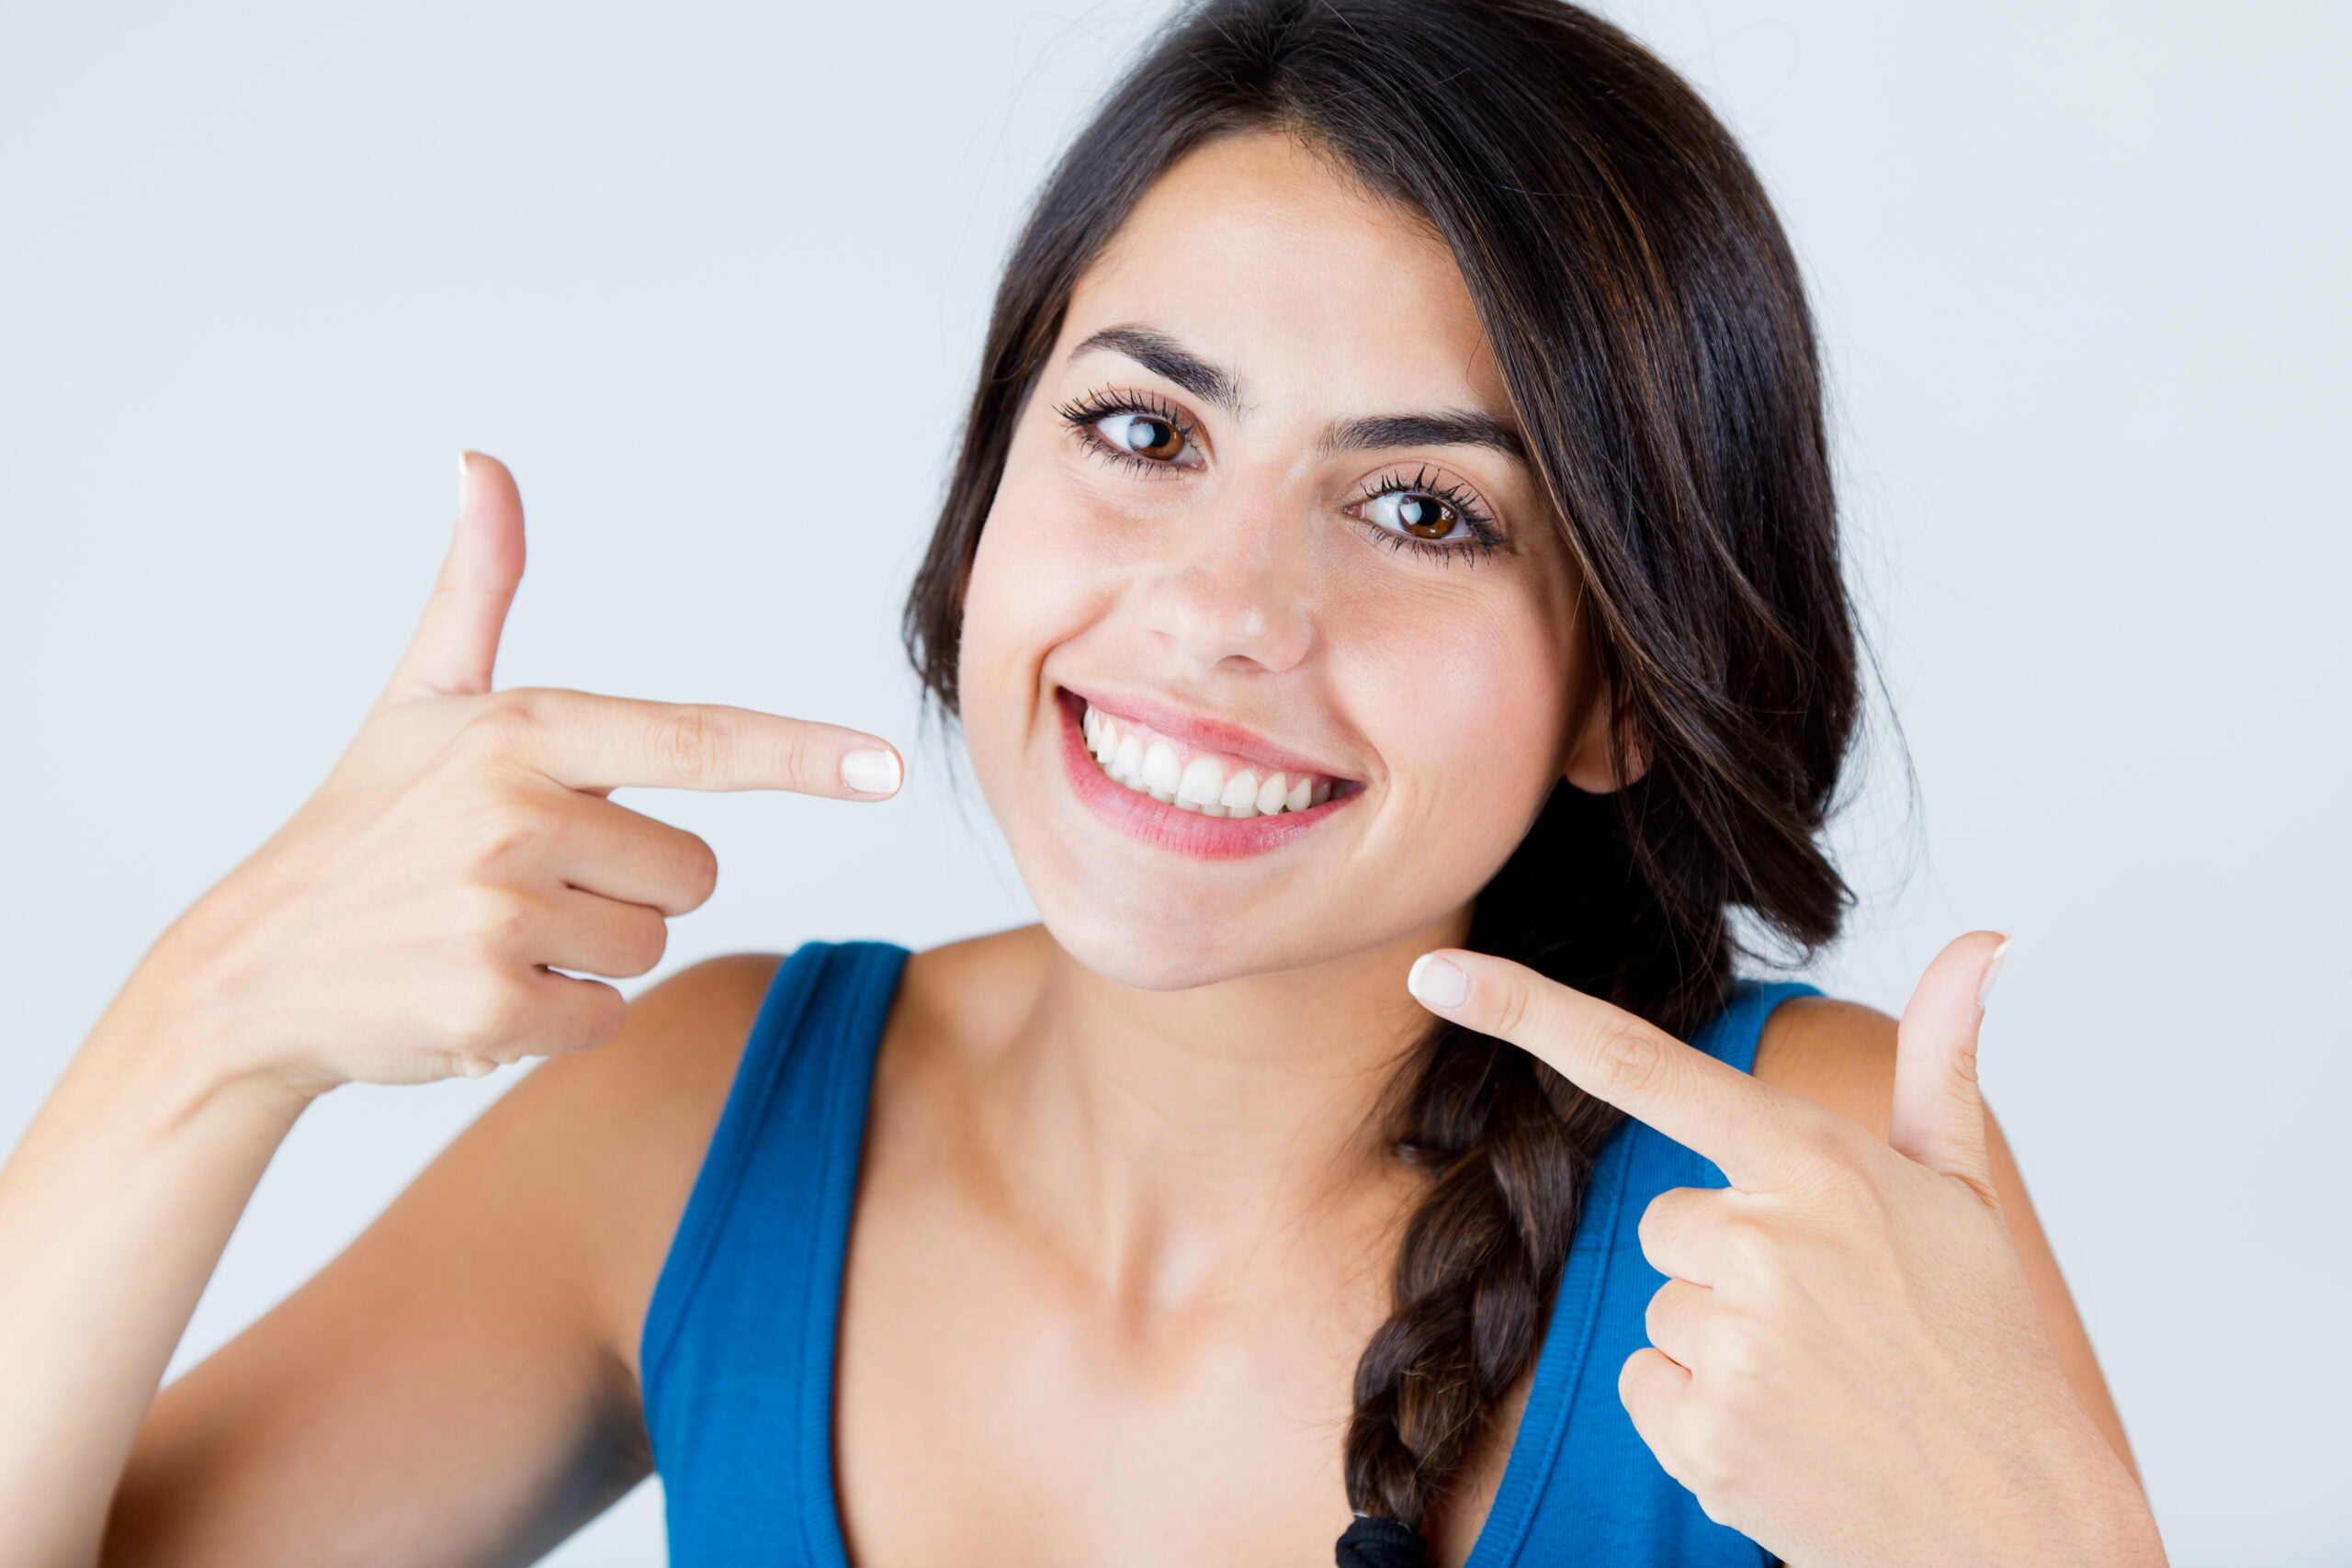 What is Expanding the dental arch and why?